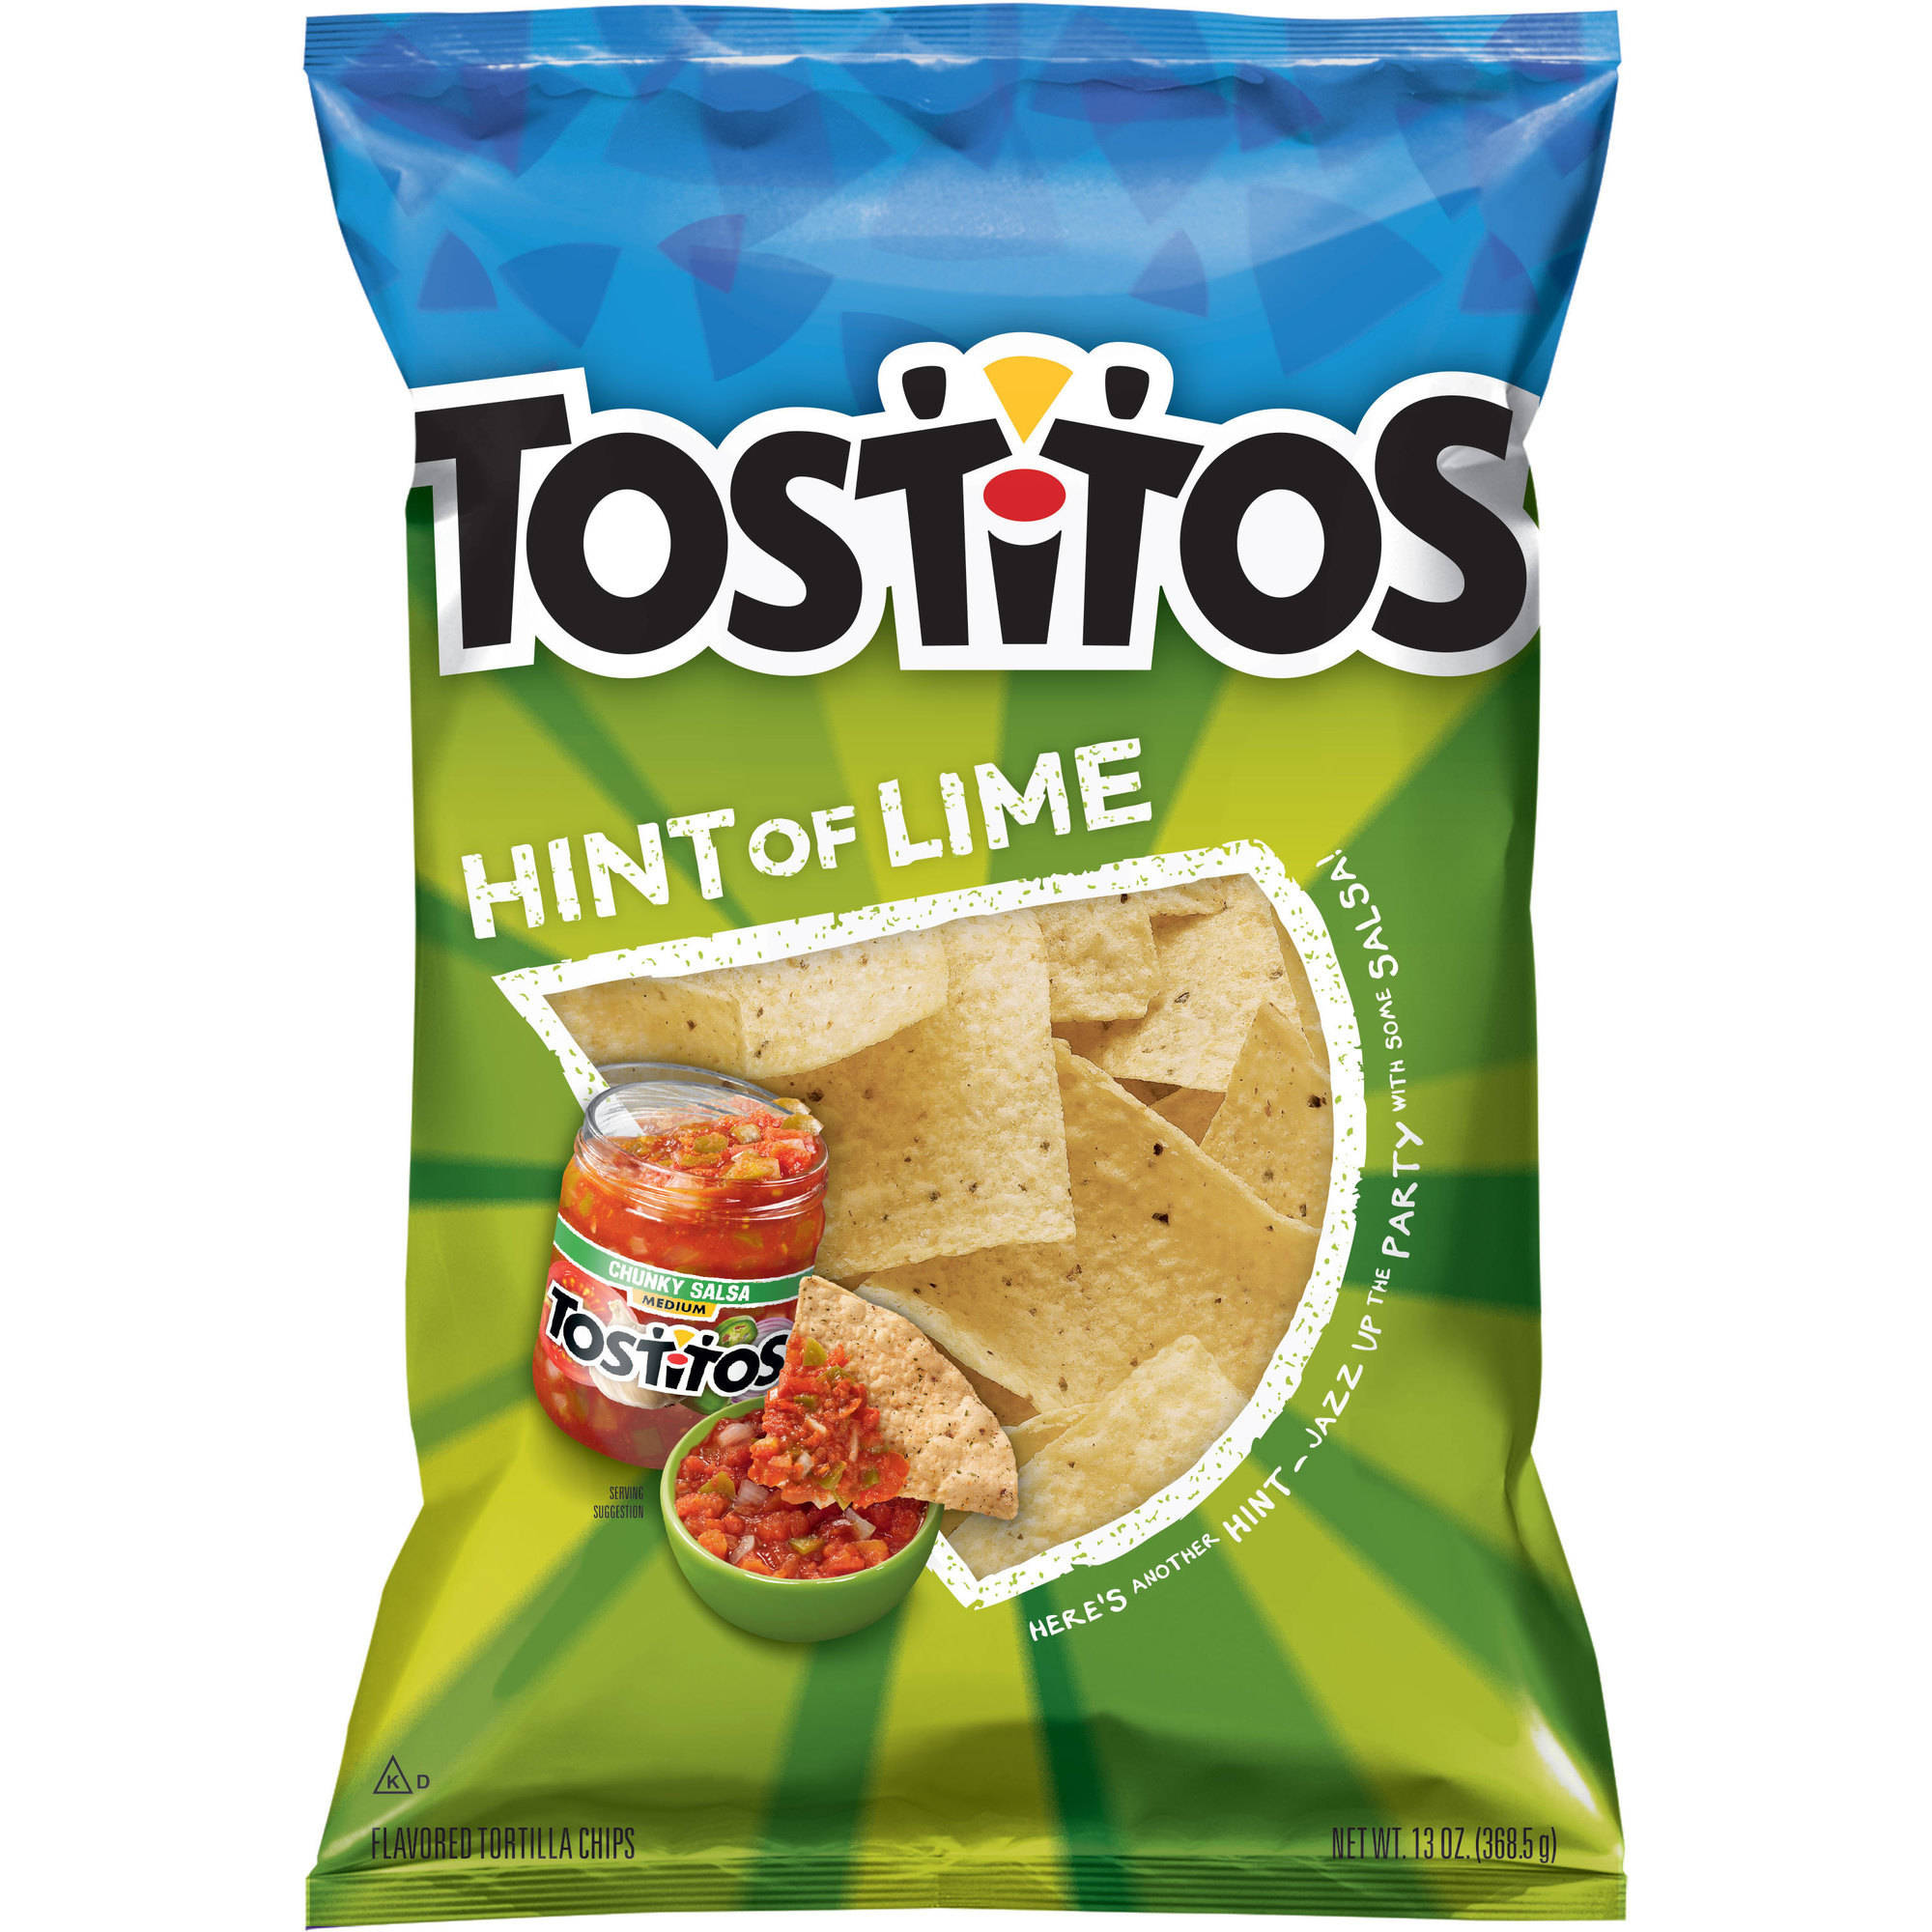 Tostitos Hint of Lime Flavored Tortilla Chips, 13 oz.